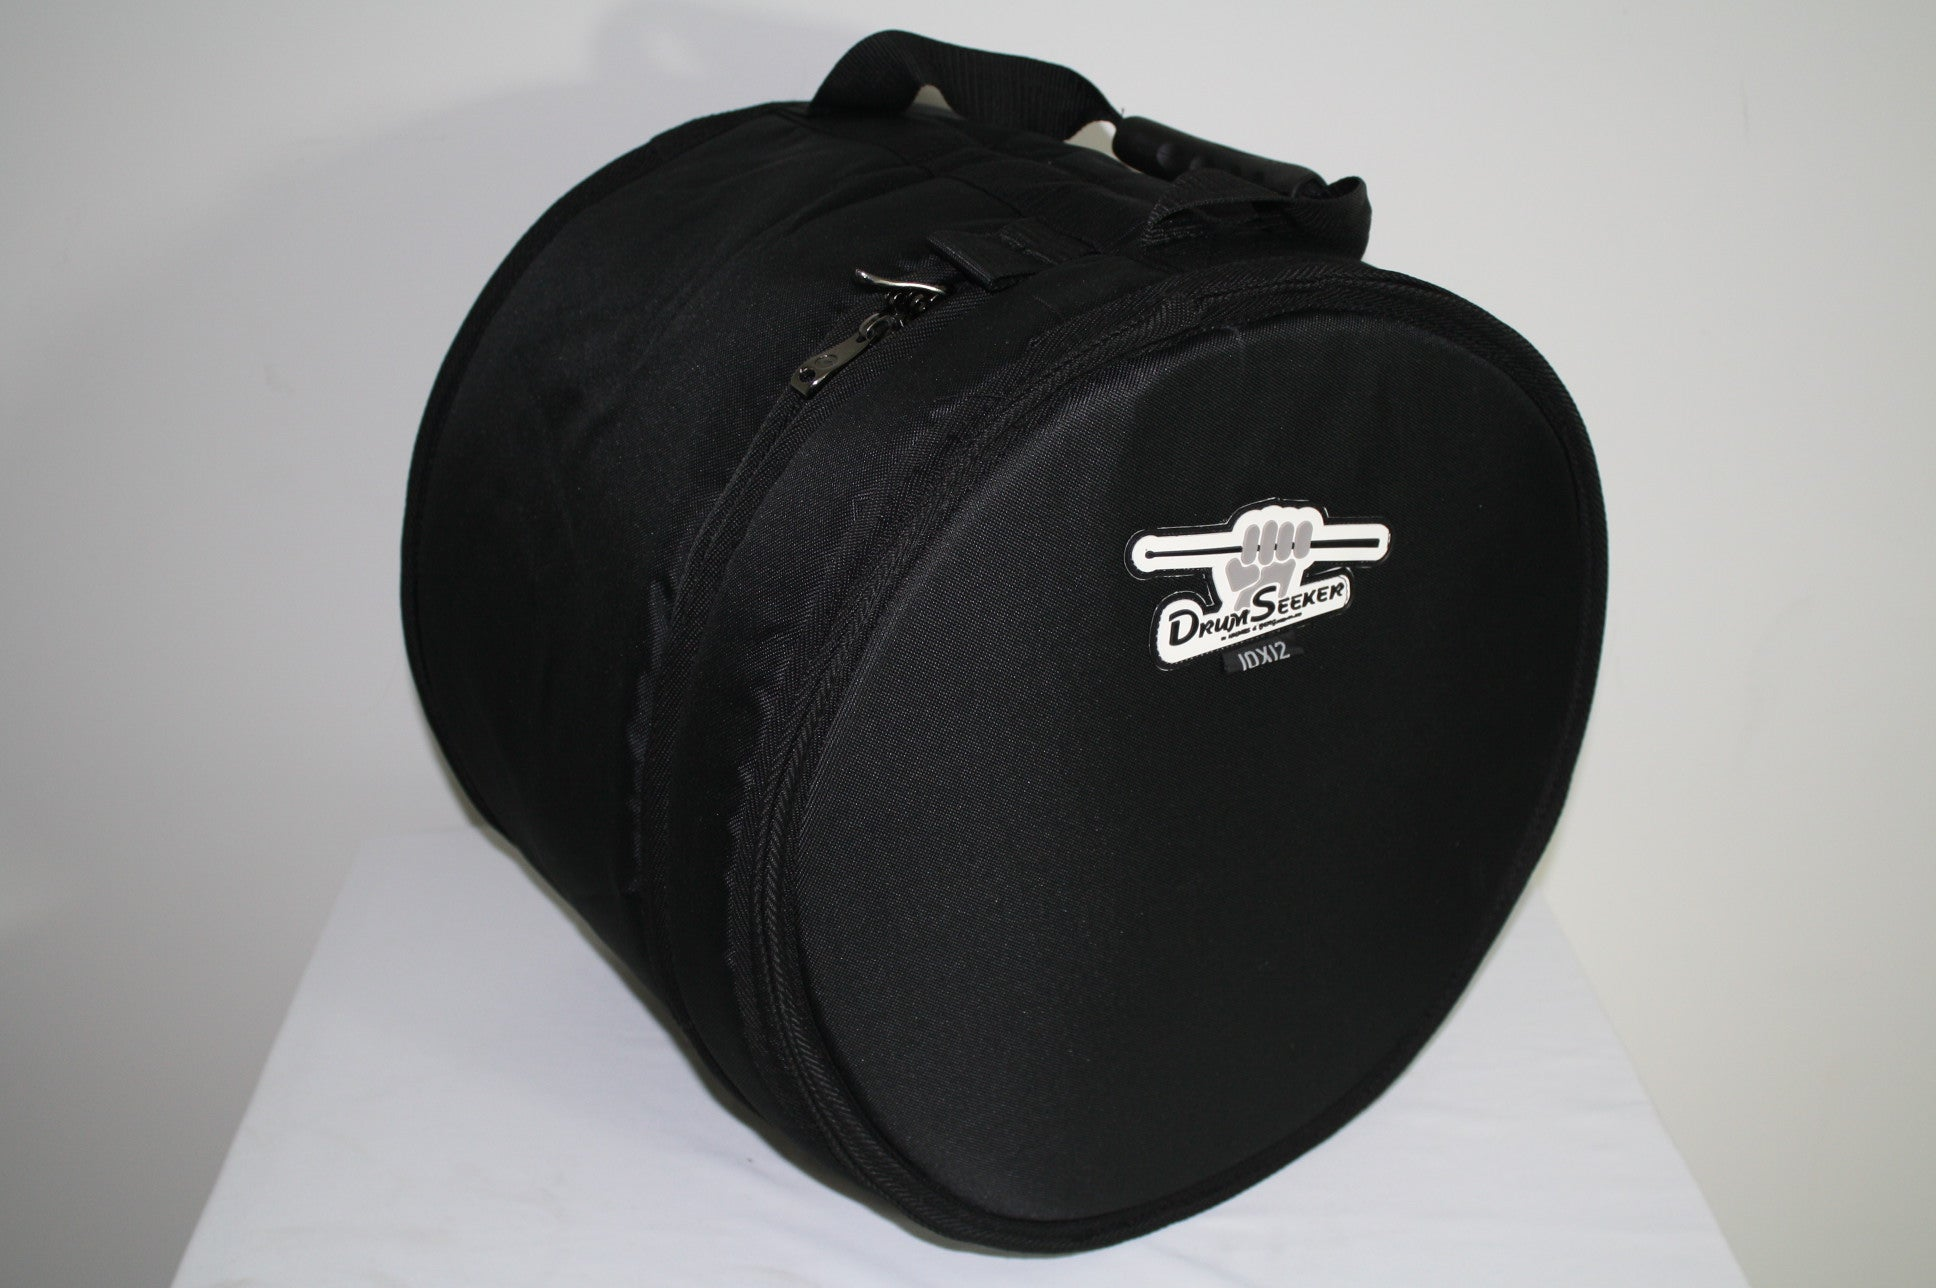 H&B  Drum Seeker 18 x 20 Inches Floor Tom Drum Bag